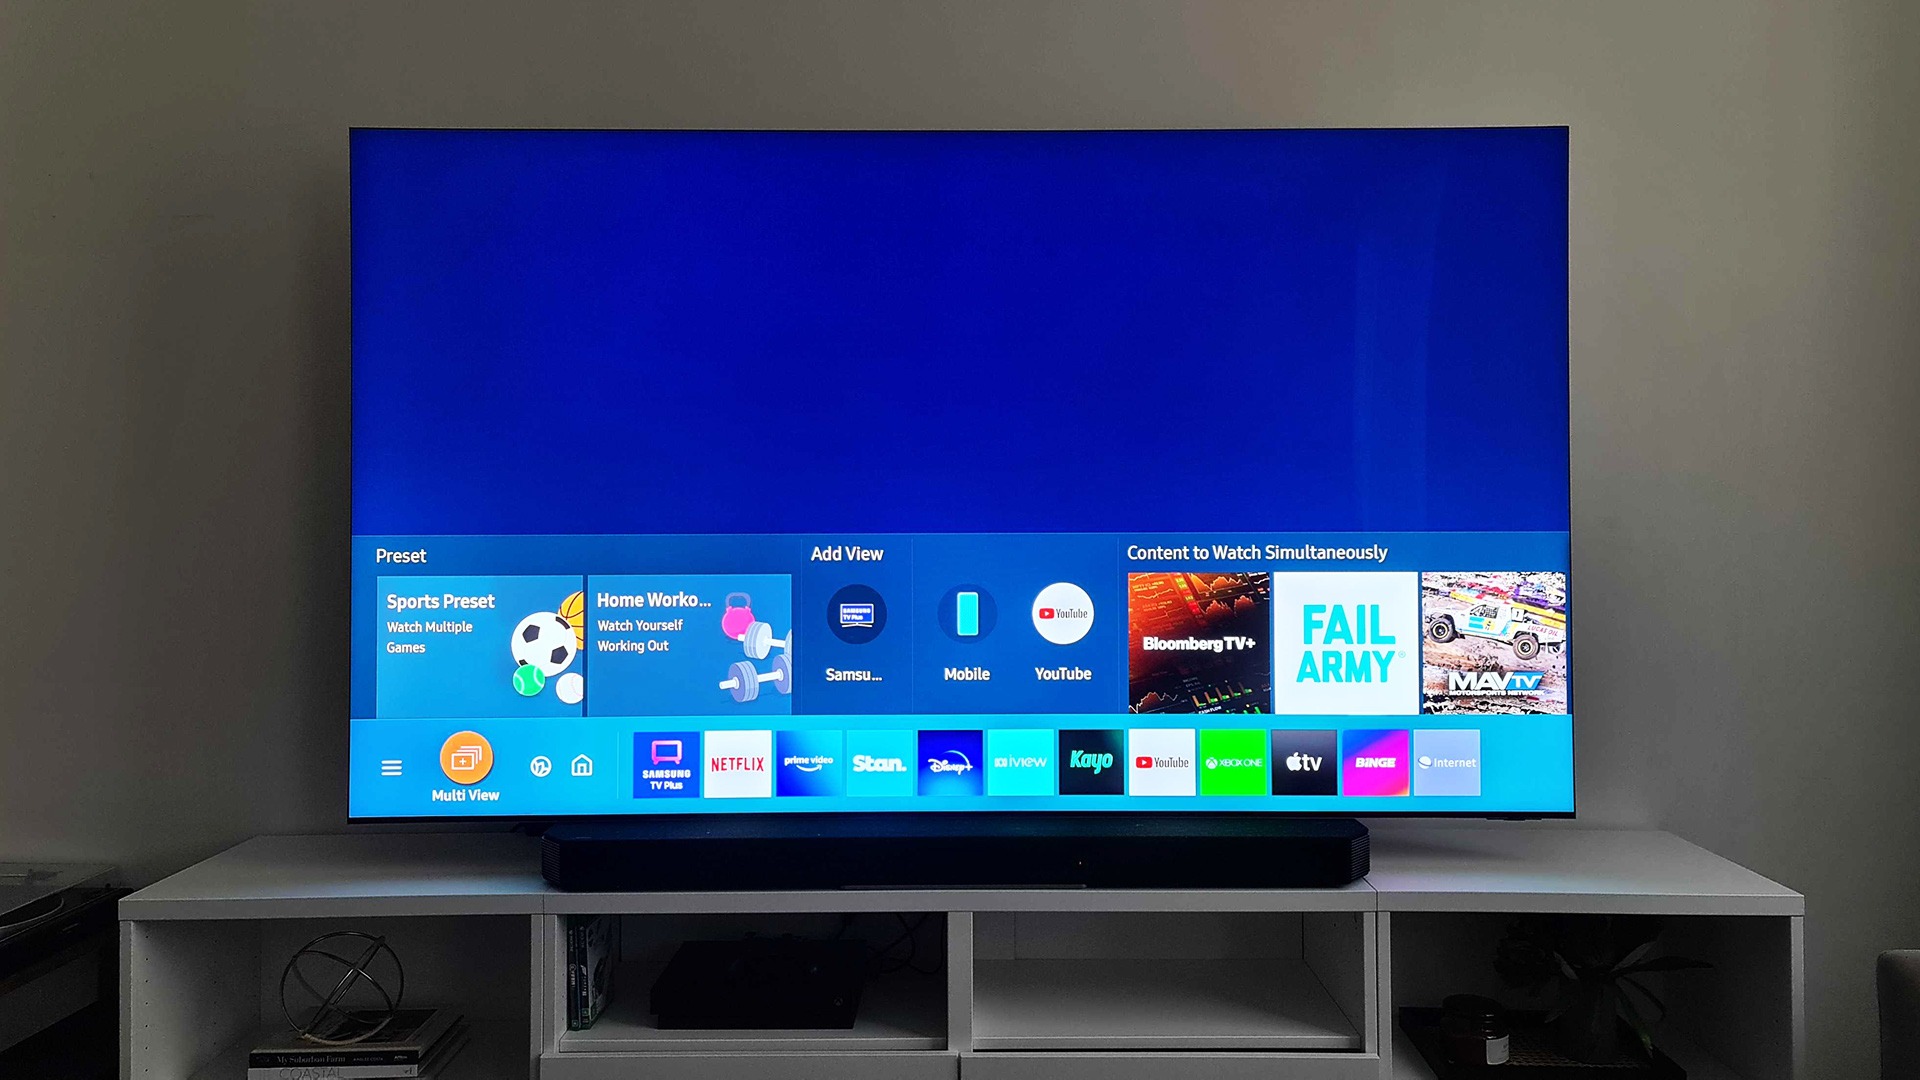 Another front view of the Samsung QN900A Neo QLED 8K